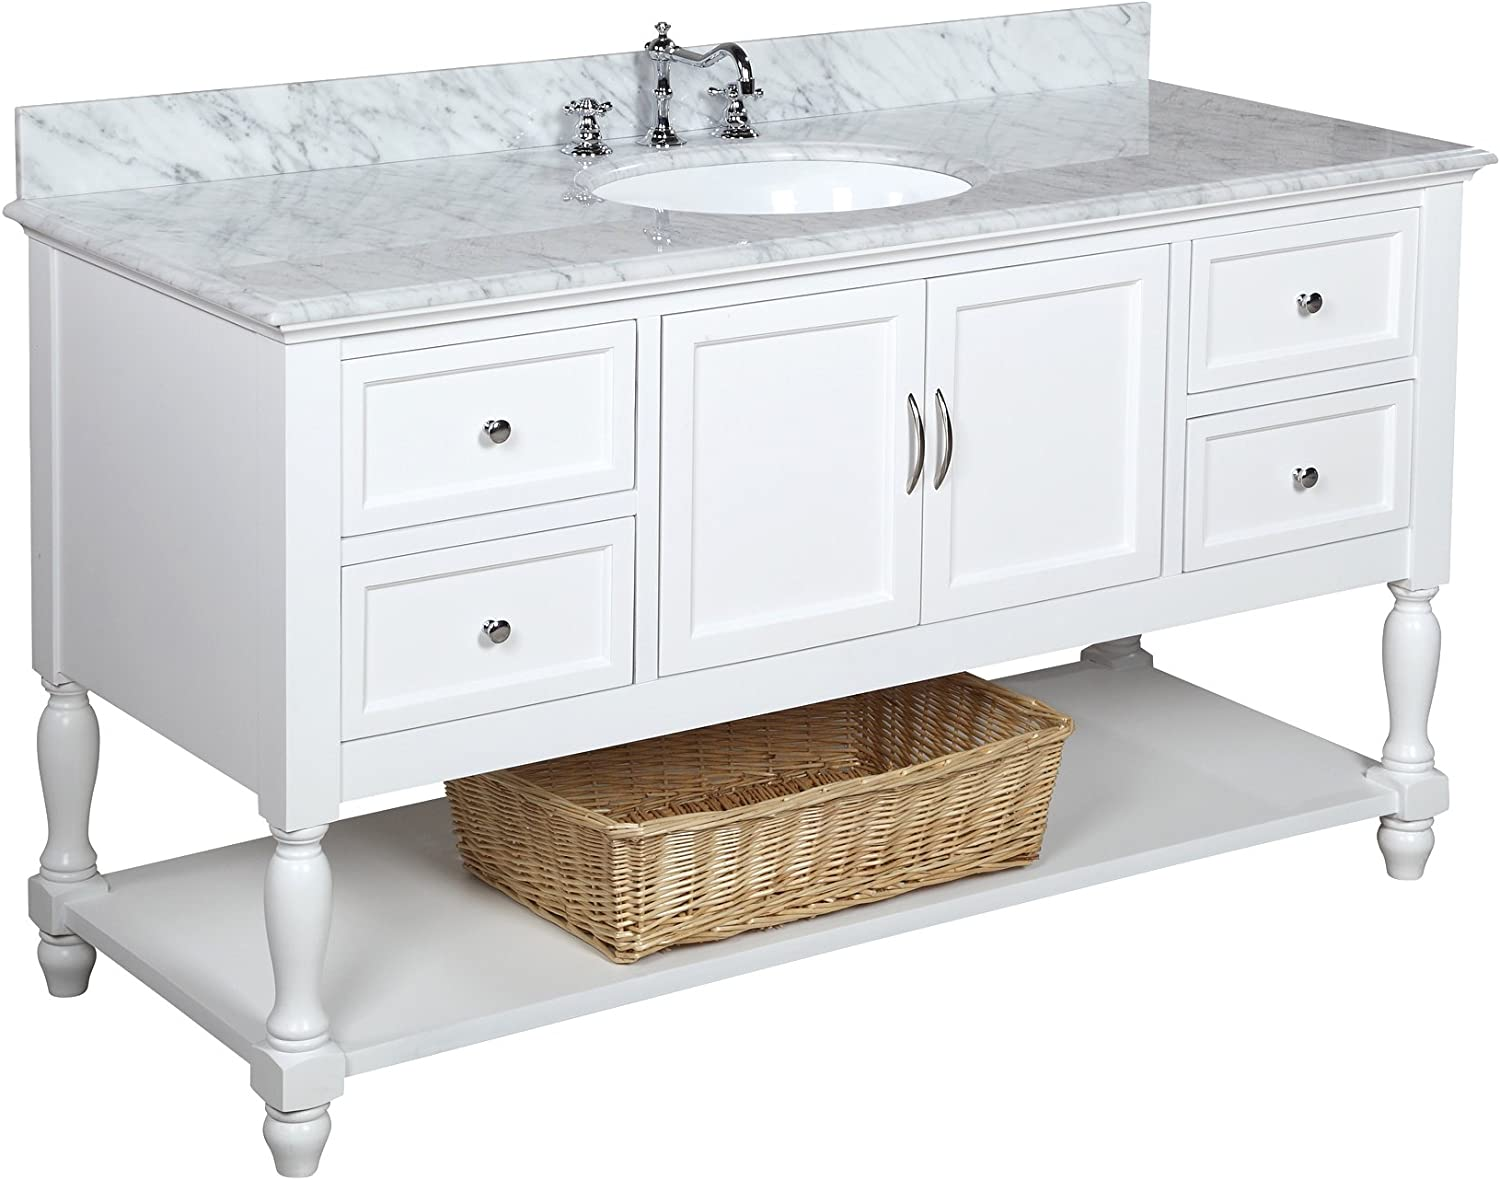 Beverly 60-inch Single Sink Bathroom Vanity Carrara White Includes a White Cabinet with Soft Close Drawers, Authentic Italian Carrara Marble Countertop, and White Ceramic Sink